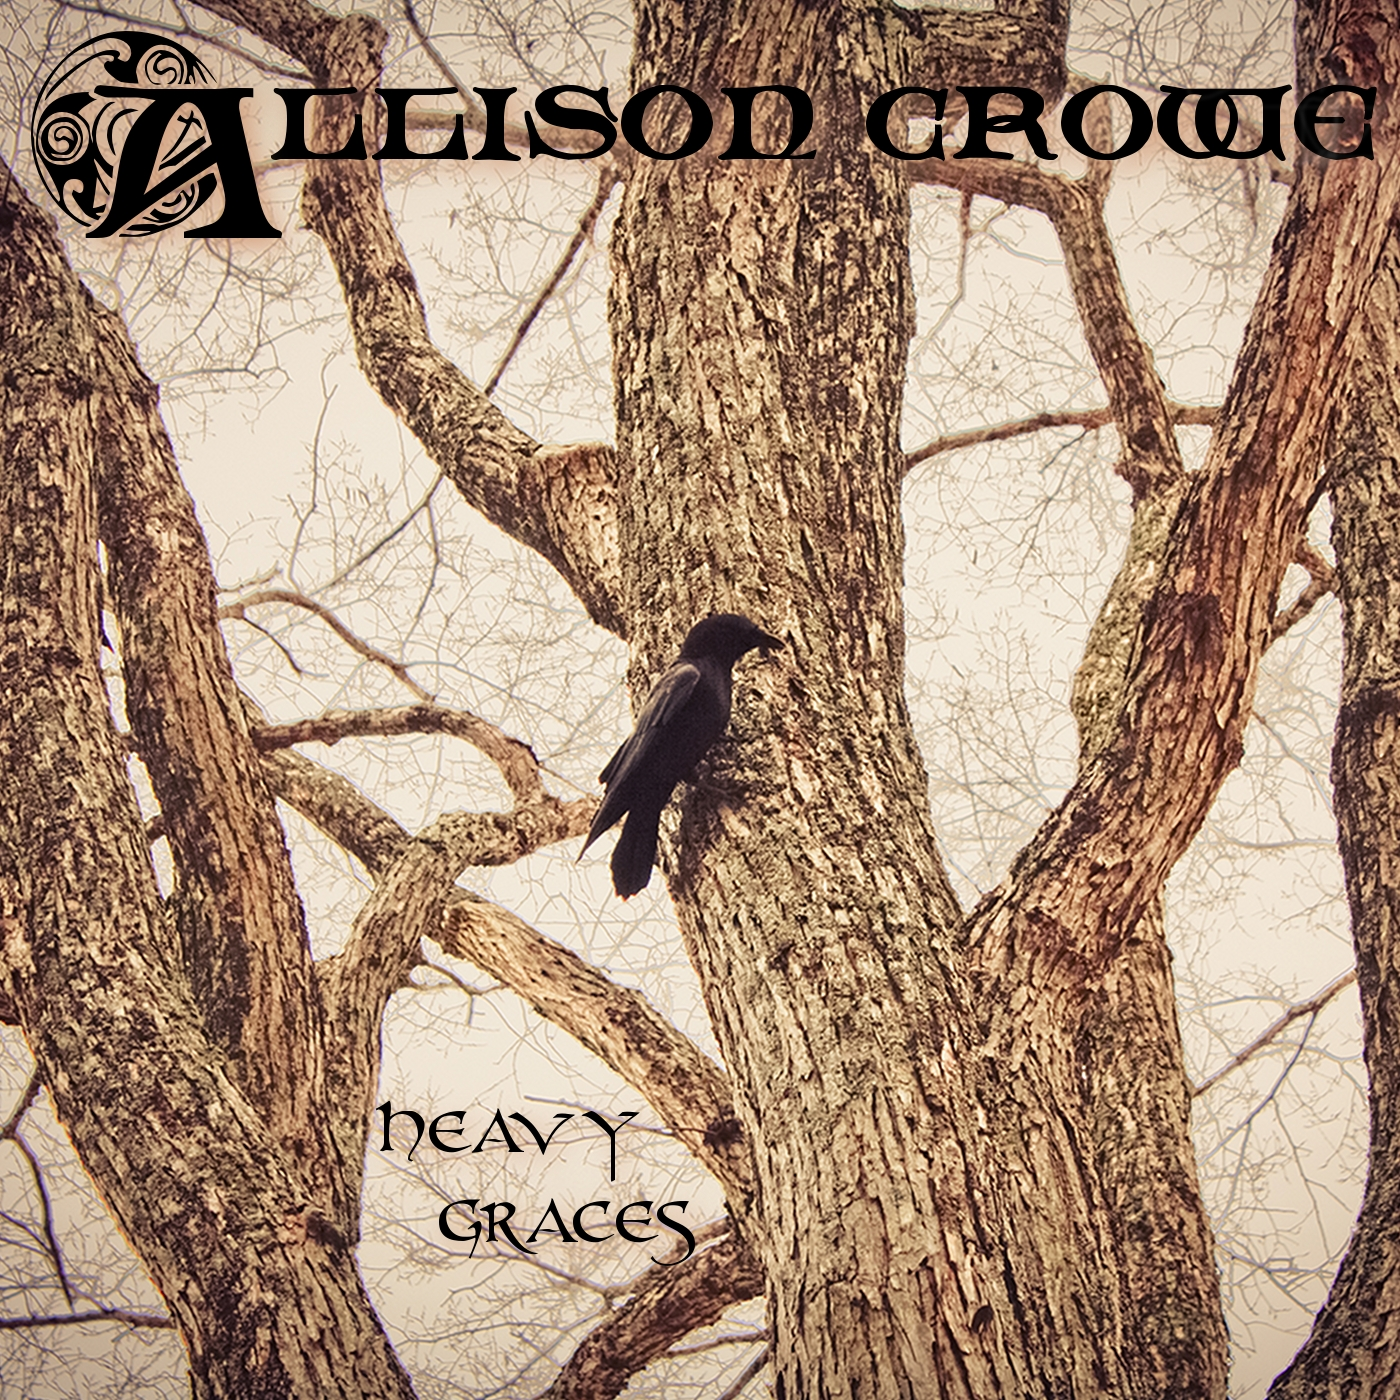 Heavy Graces - Allison Crowe - album cover art